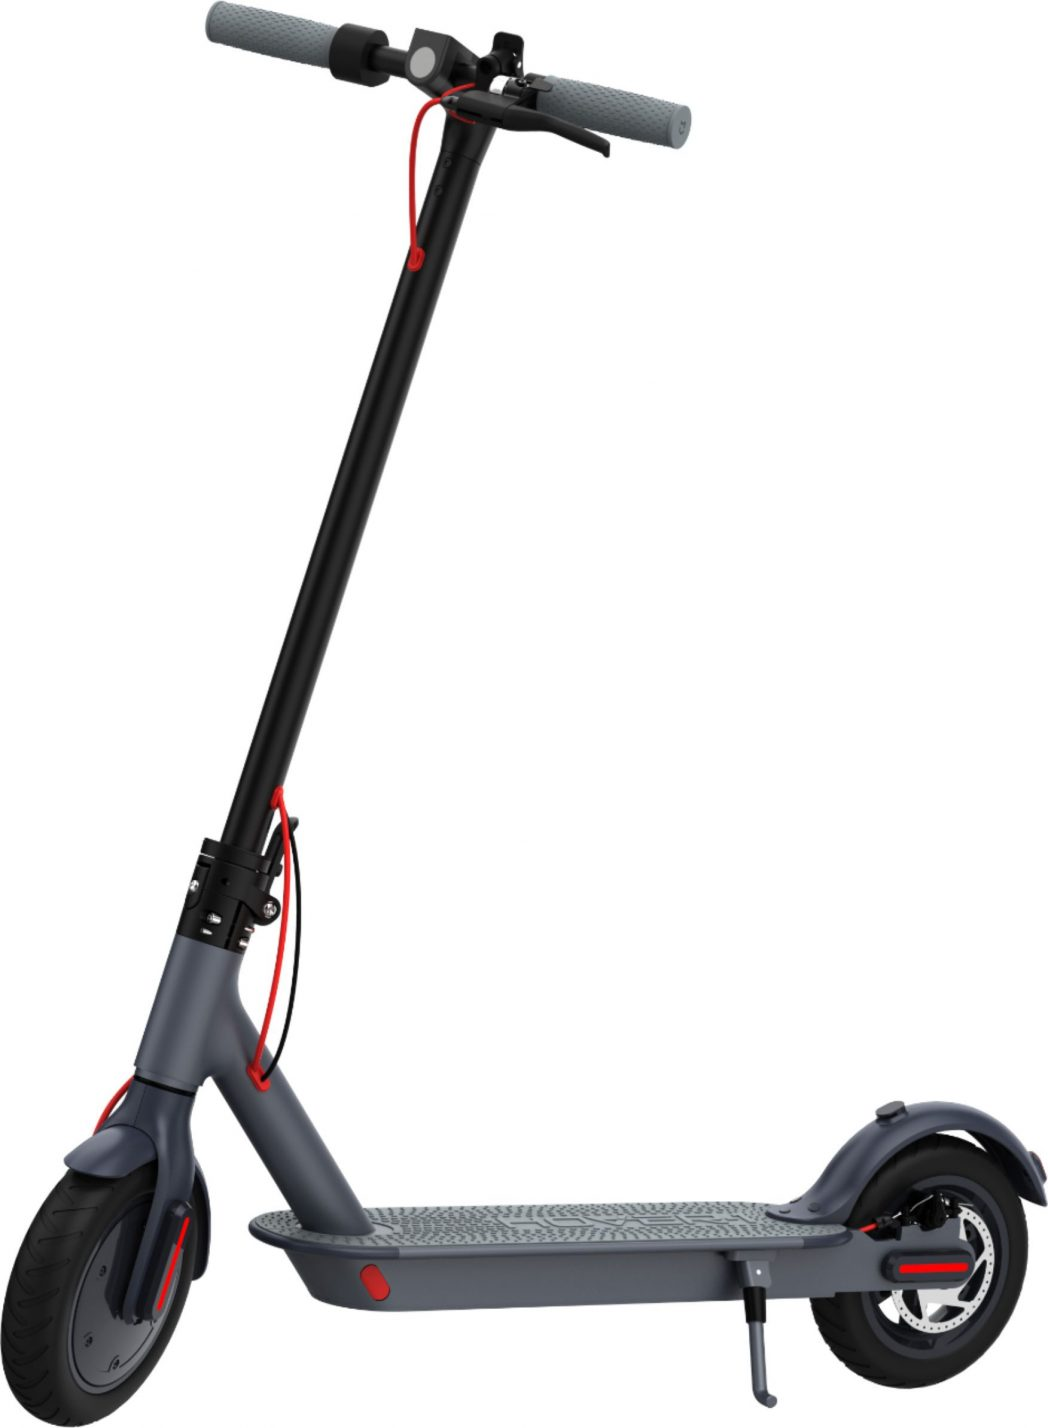 We love electric scooters